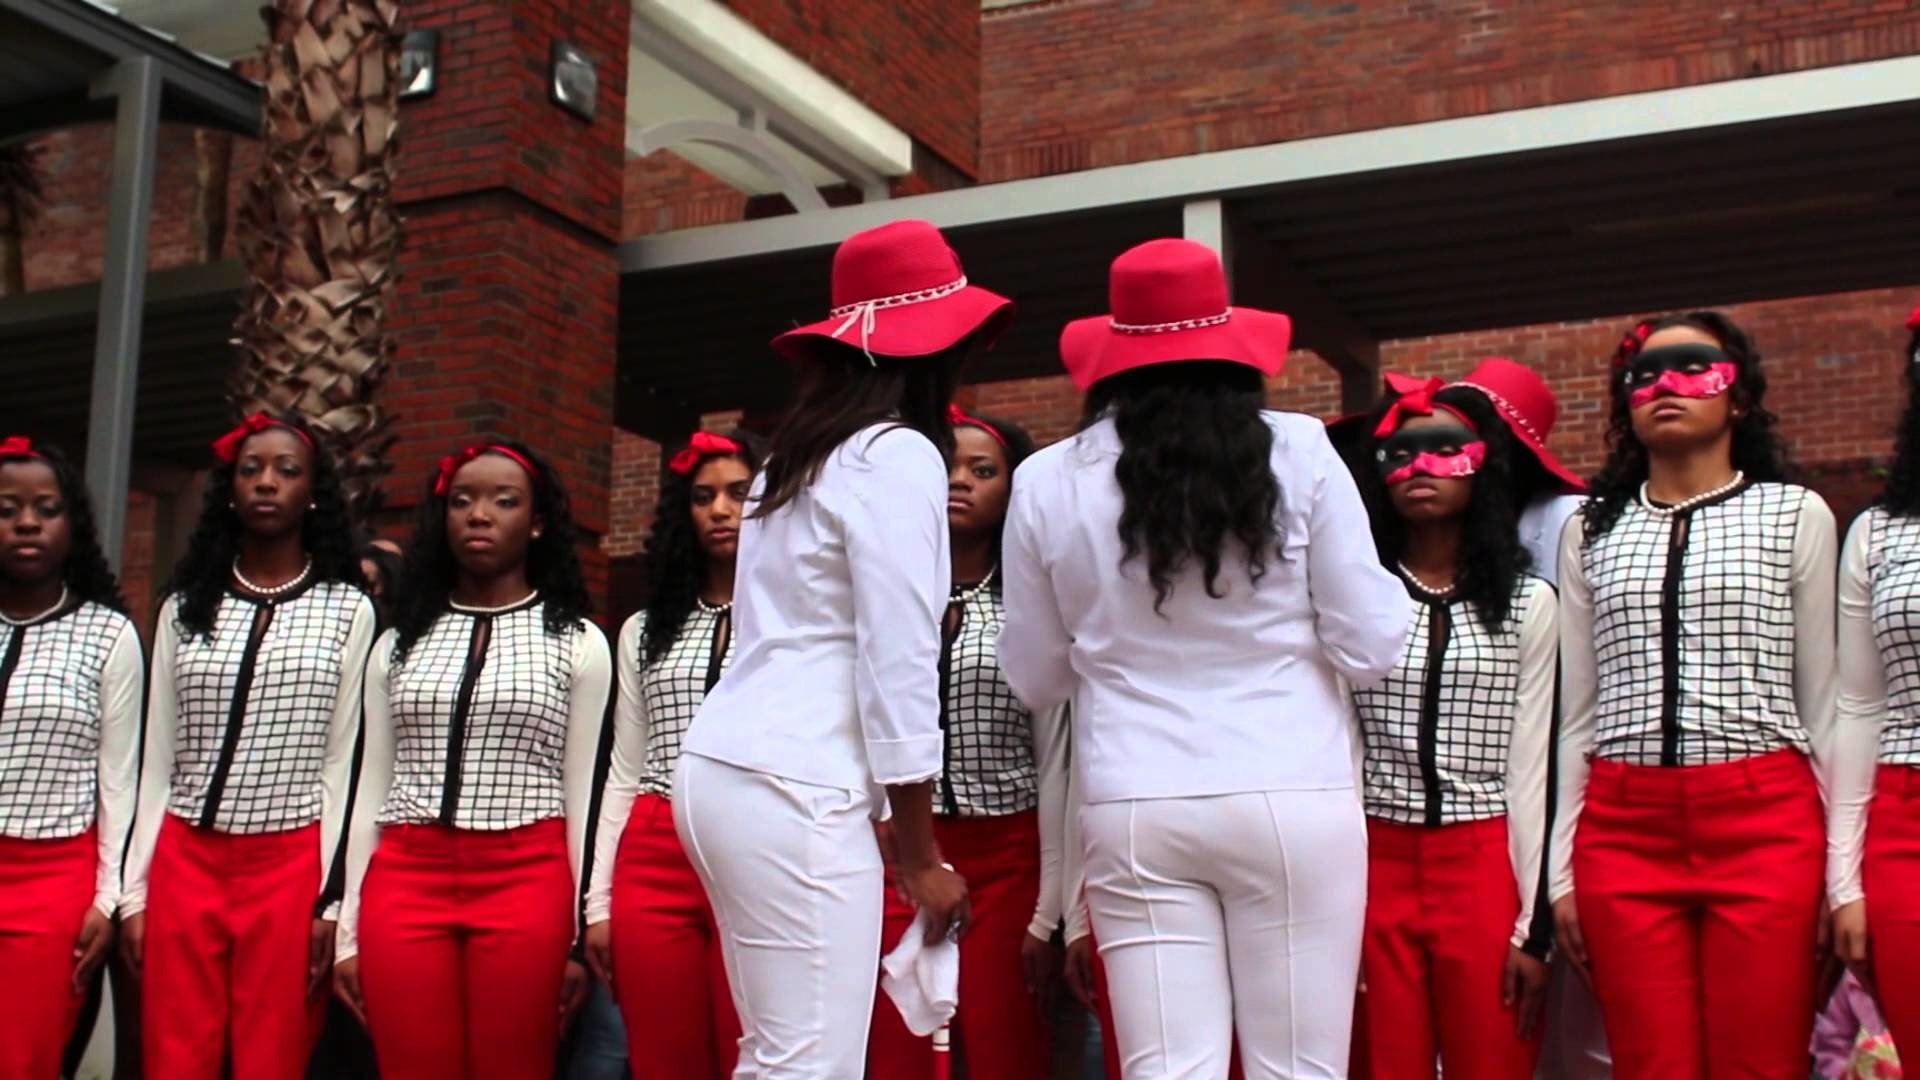 Delta sigma theta wallpaper 60 images 1920x1080 lambda psi chapter of delta sigma theta sorority inc spring 2014 probate buycottarizona Choice Image